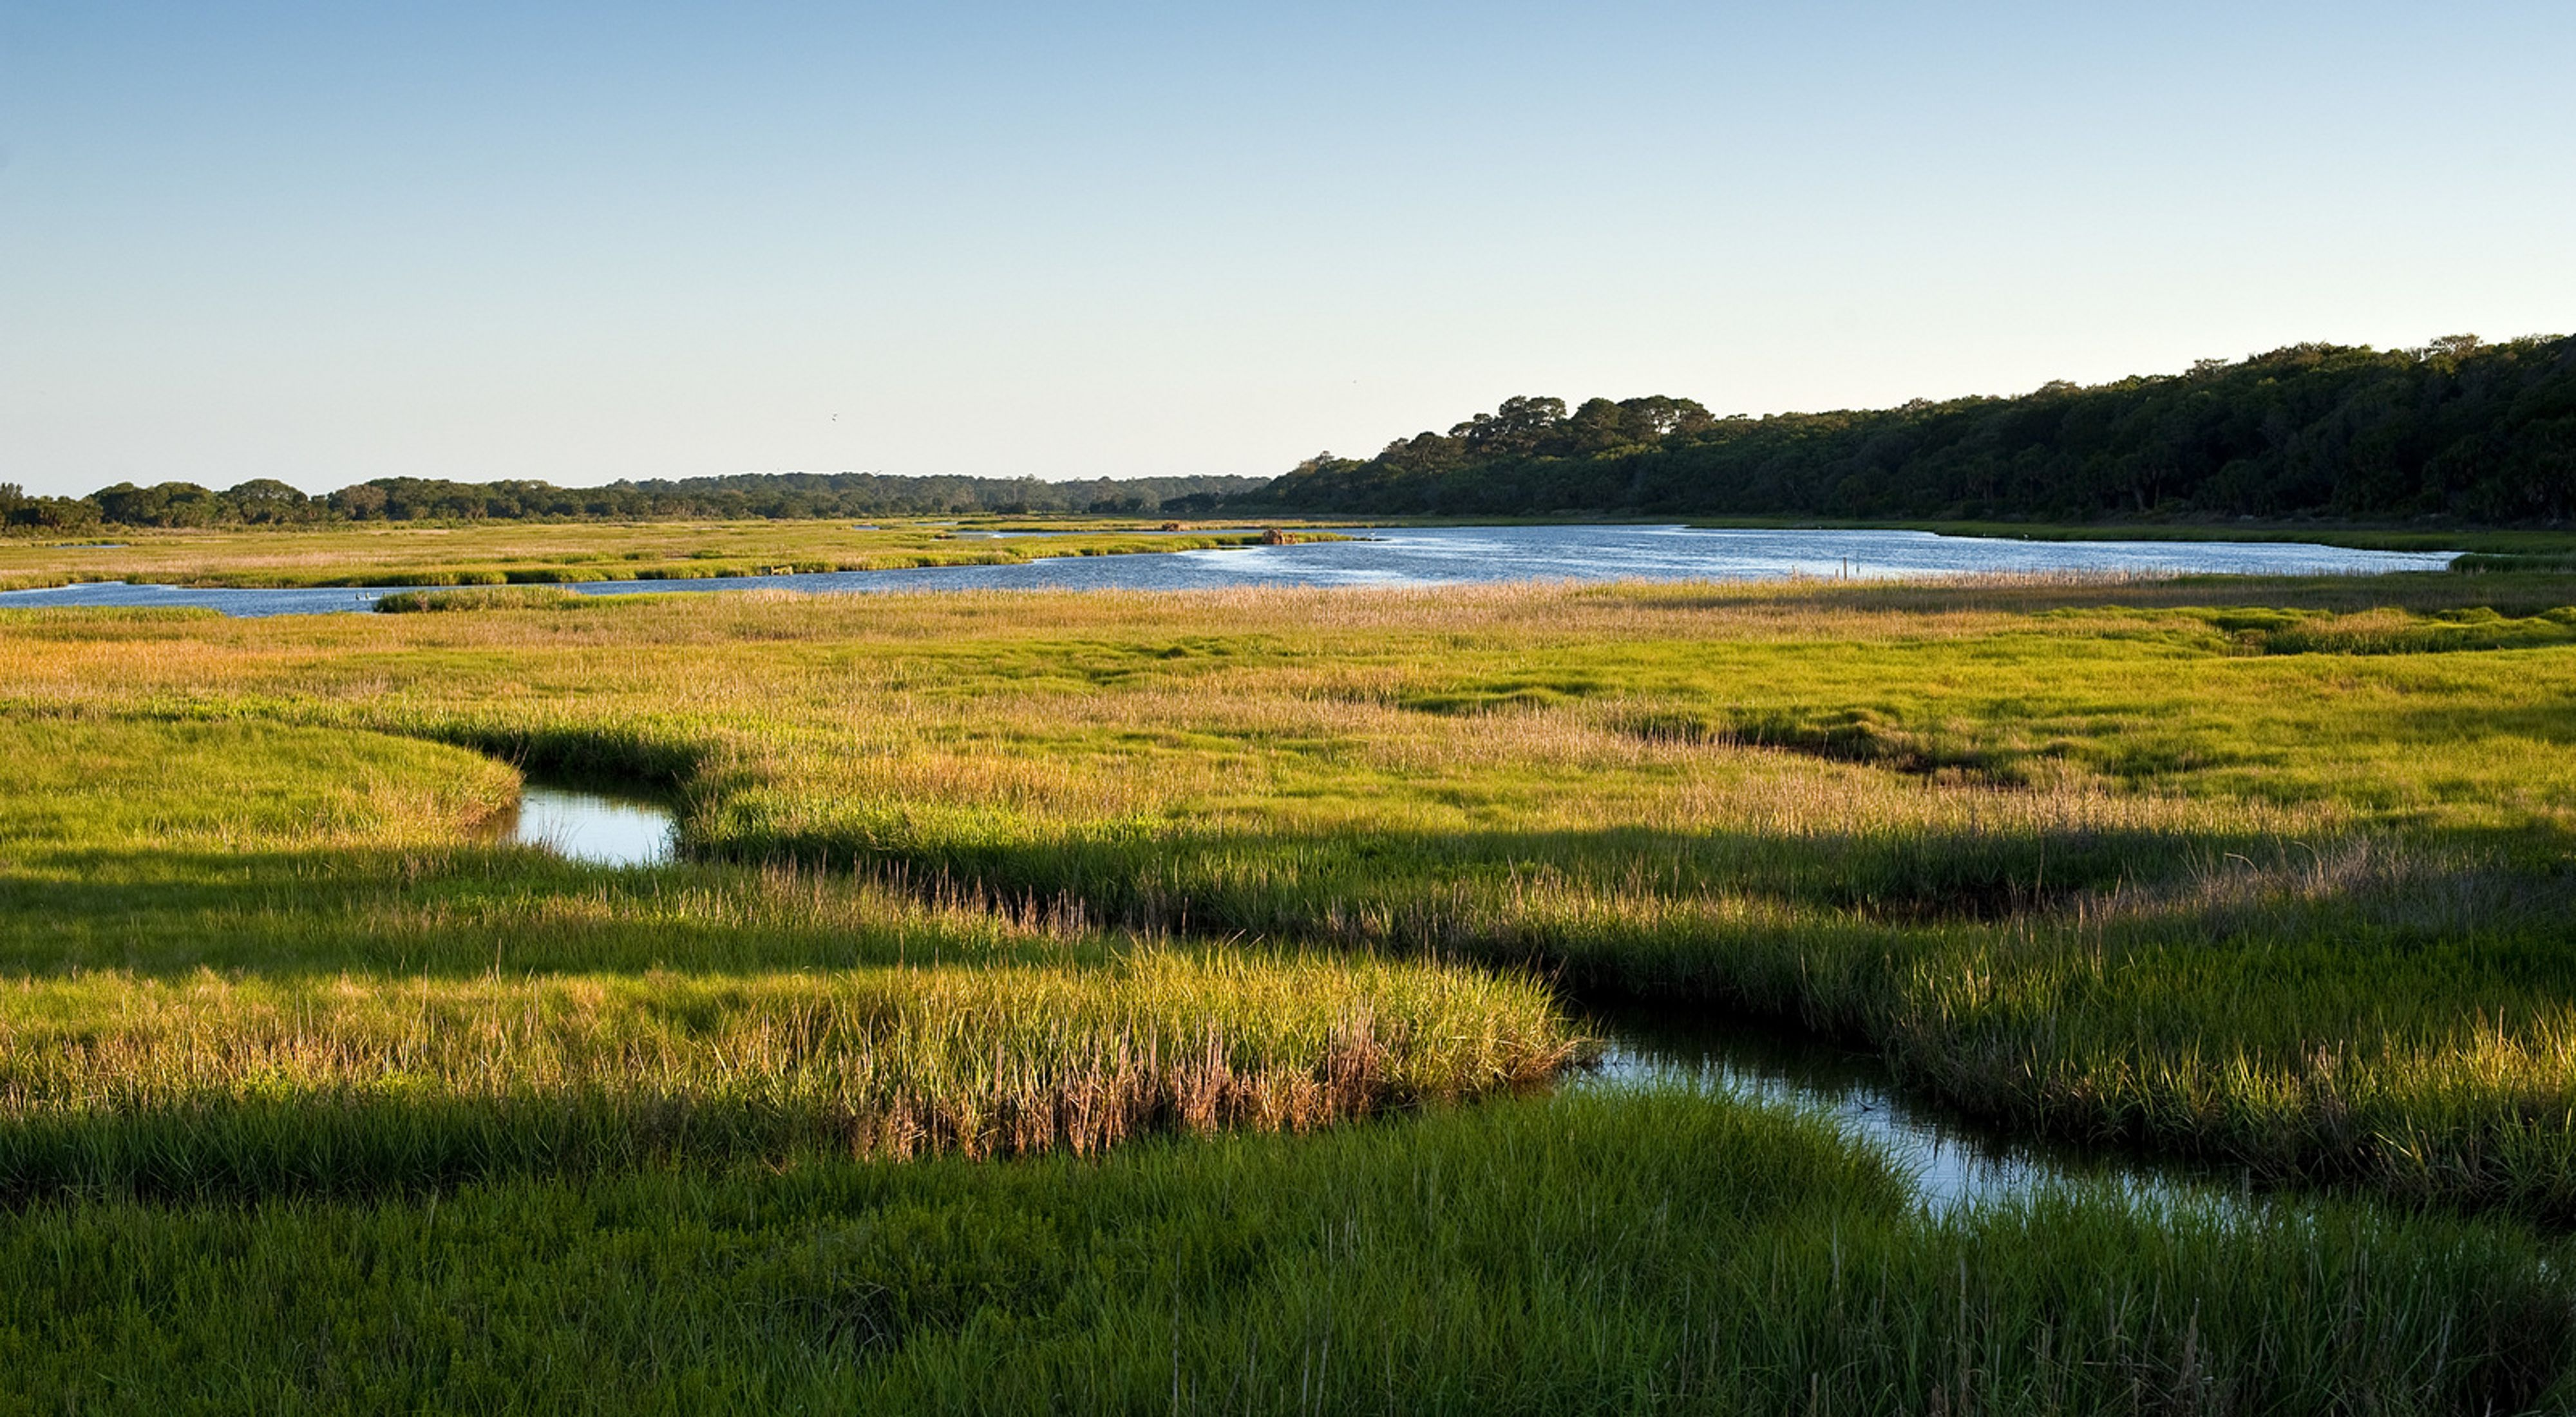 A marshland teeming with green grasses stretches into the distance on Little St. Simons Island.